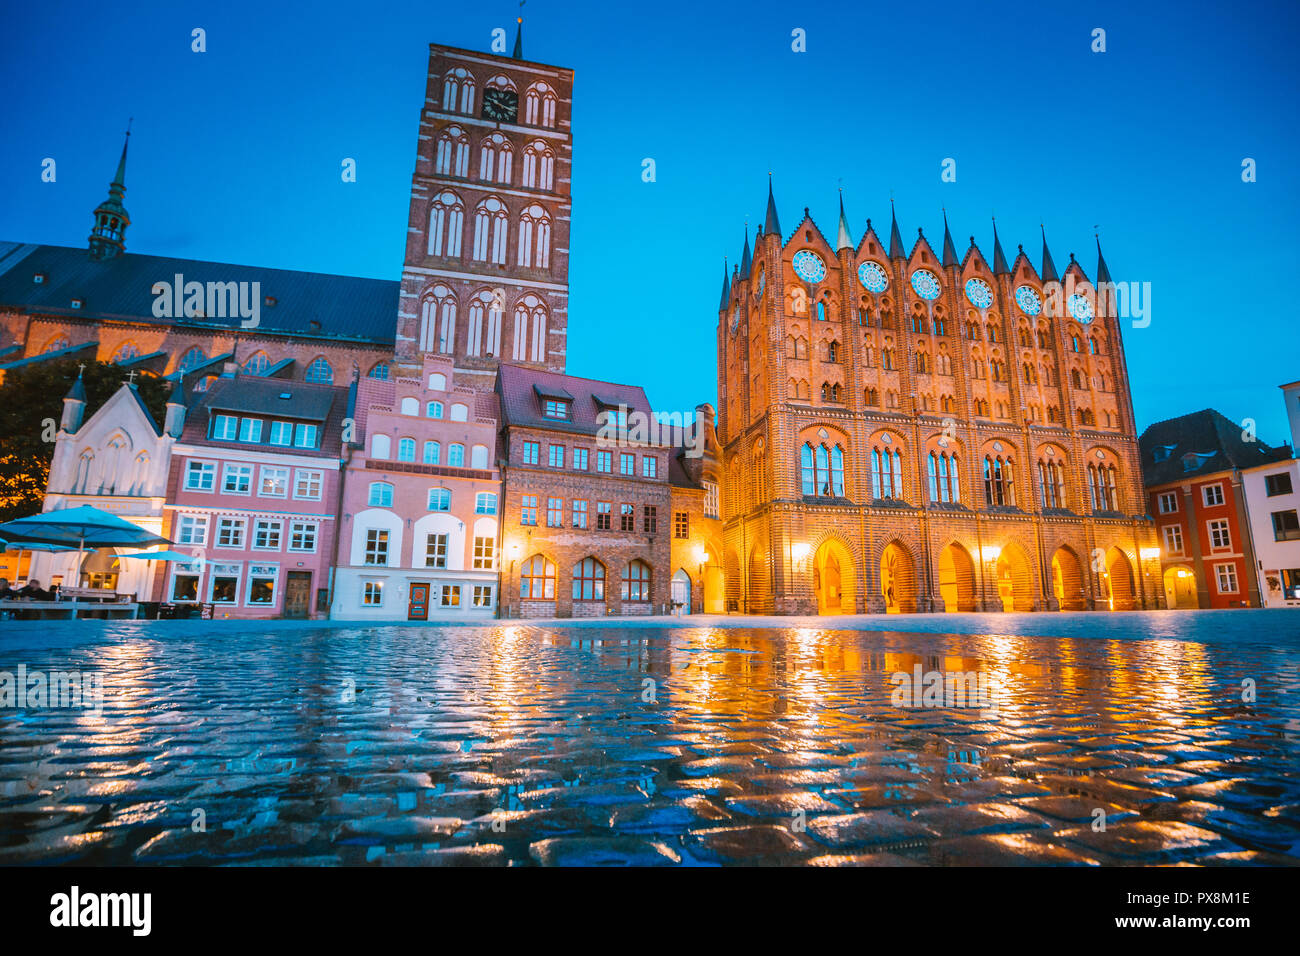 Classic twilight view of the hanseatic town of Stralsund during blue hour at dusk, Mecklenburg-Vorpommern, Germany - Stock Image